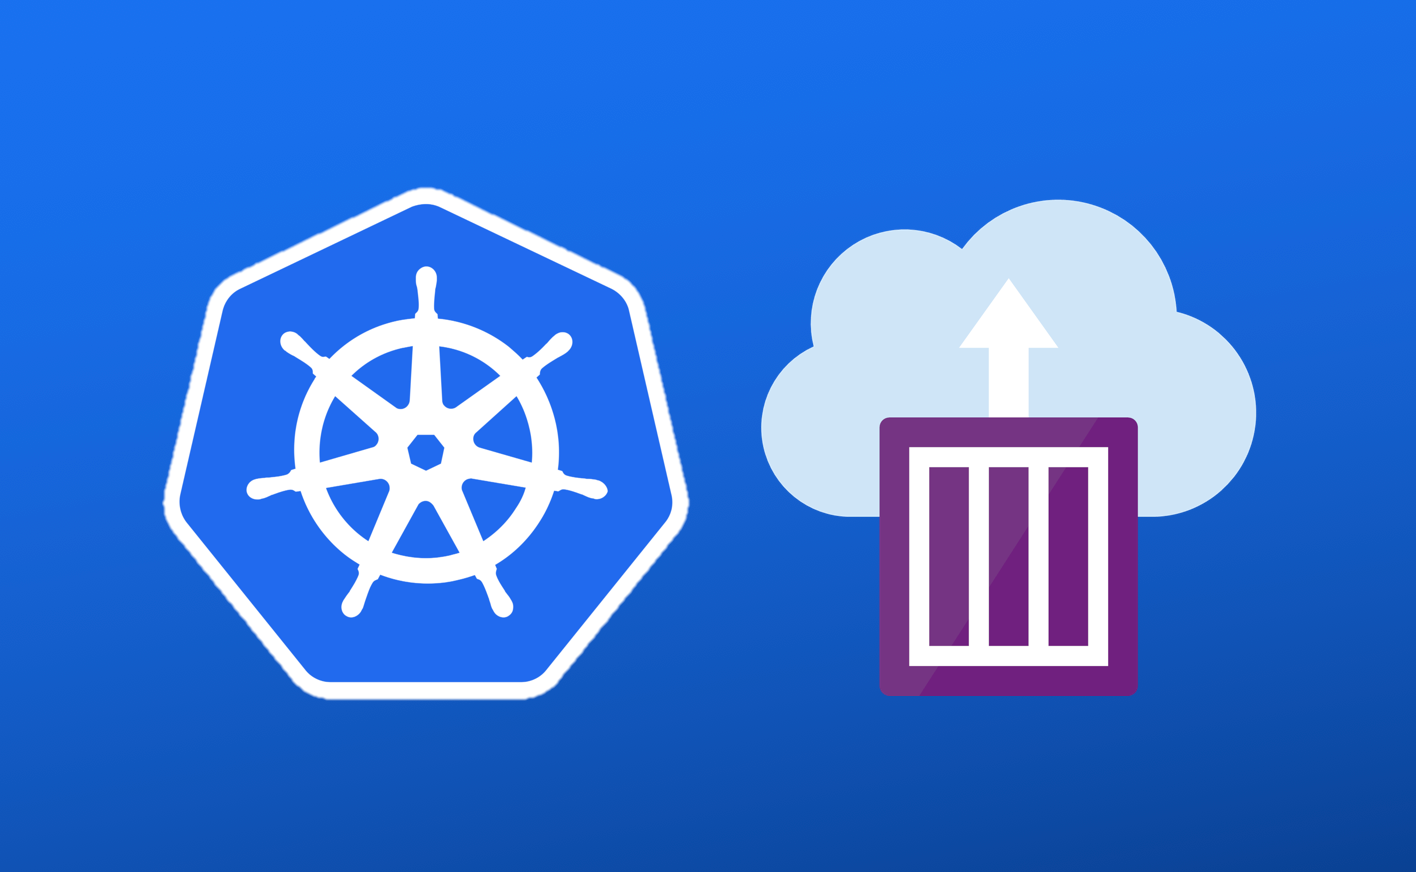 deploying windows containers with azure container